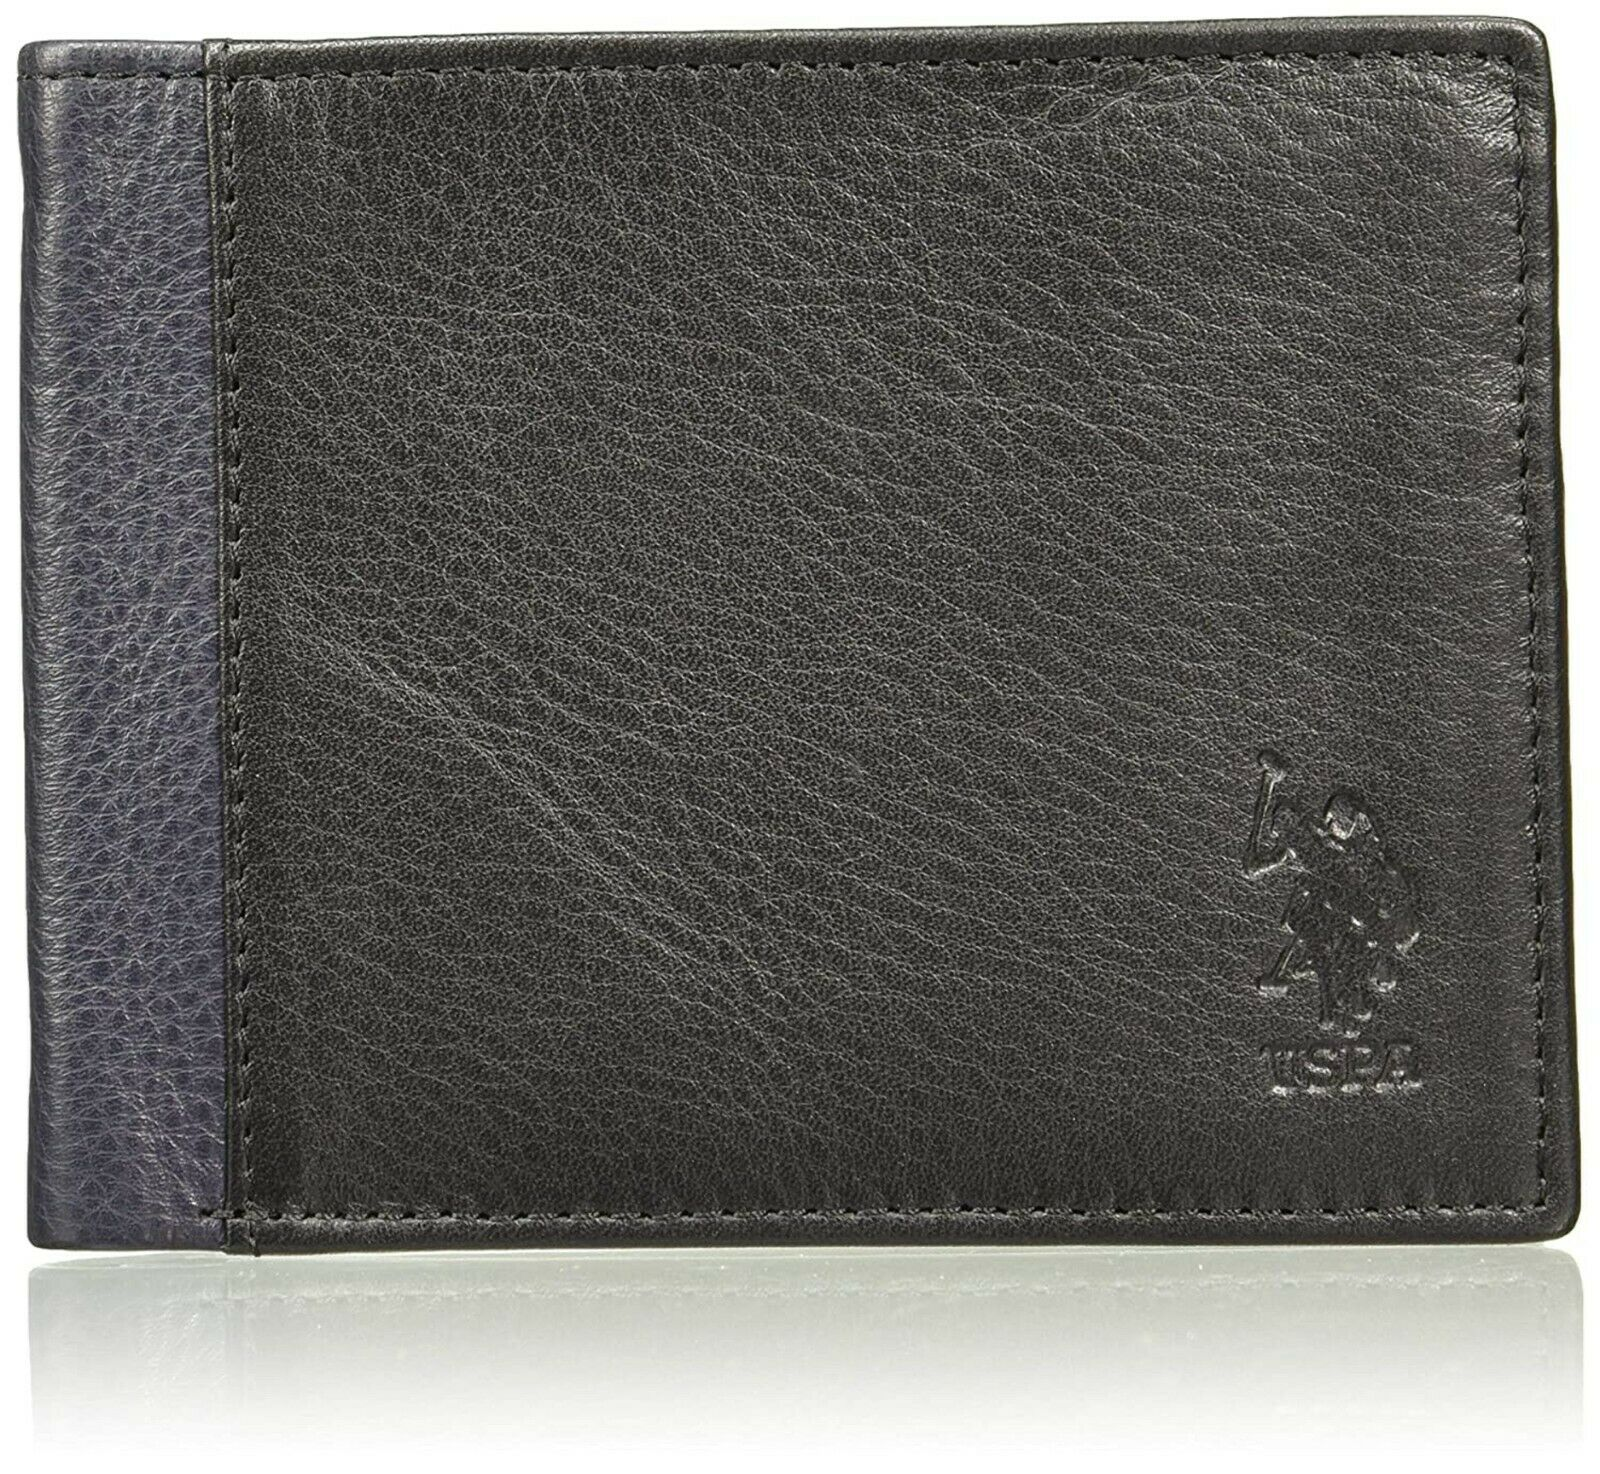 US Polo Association Black & Navy Leather Wallet For Men